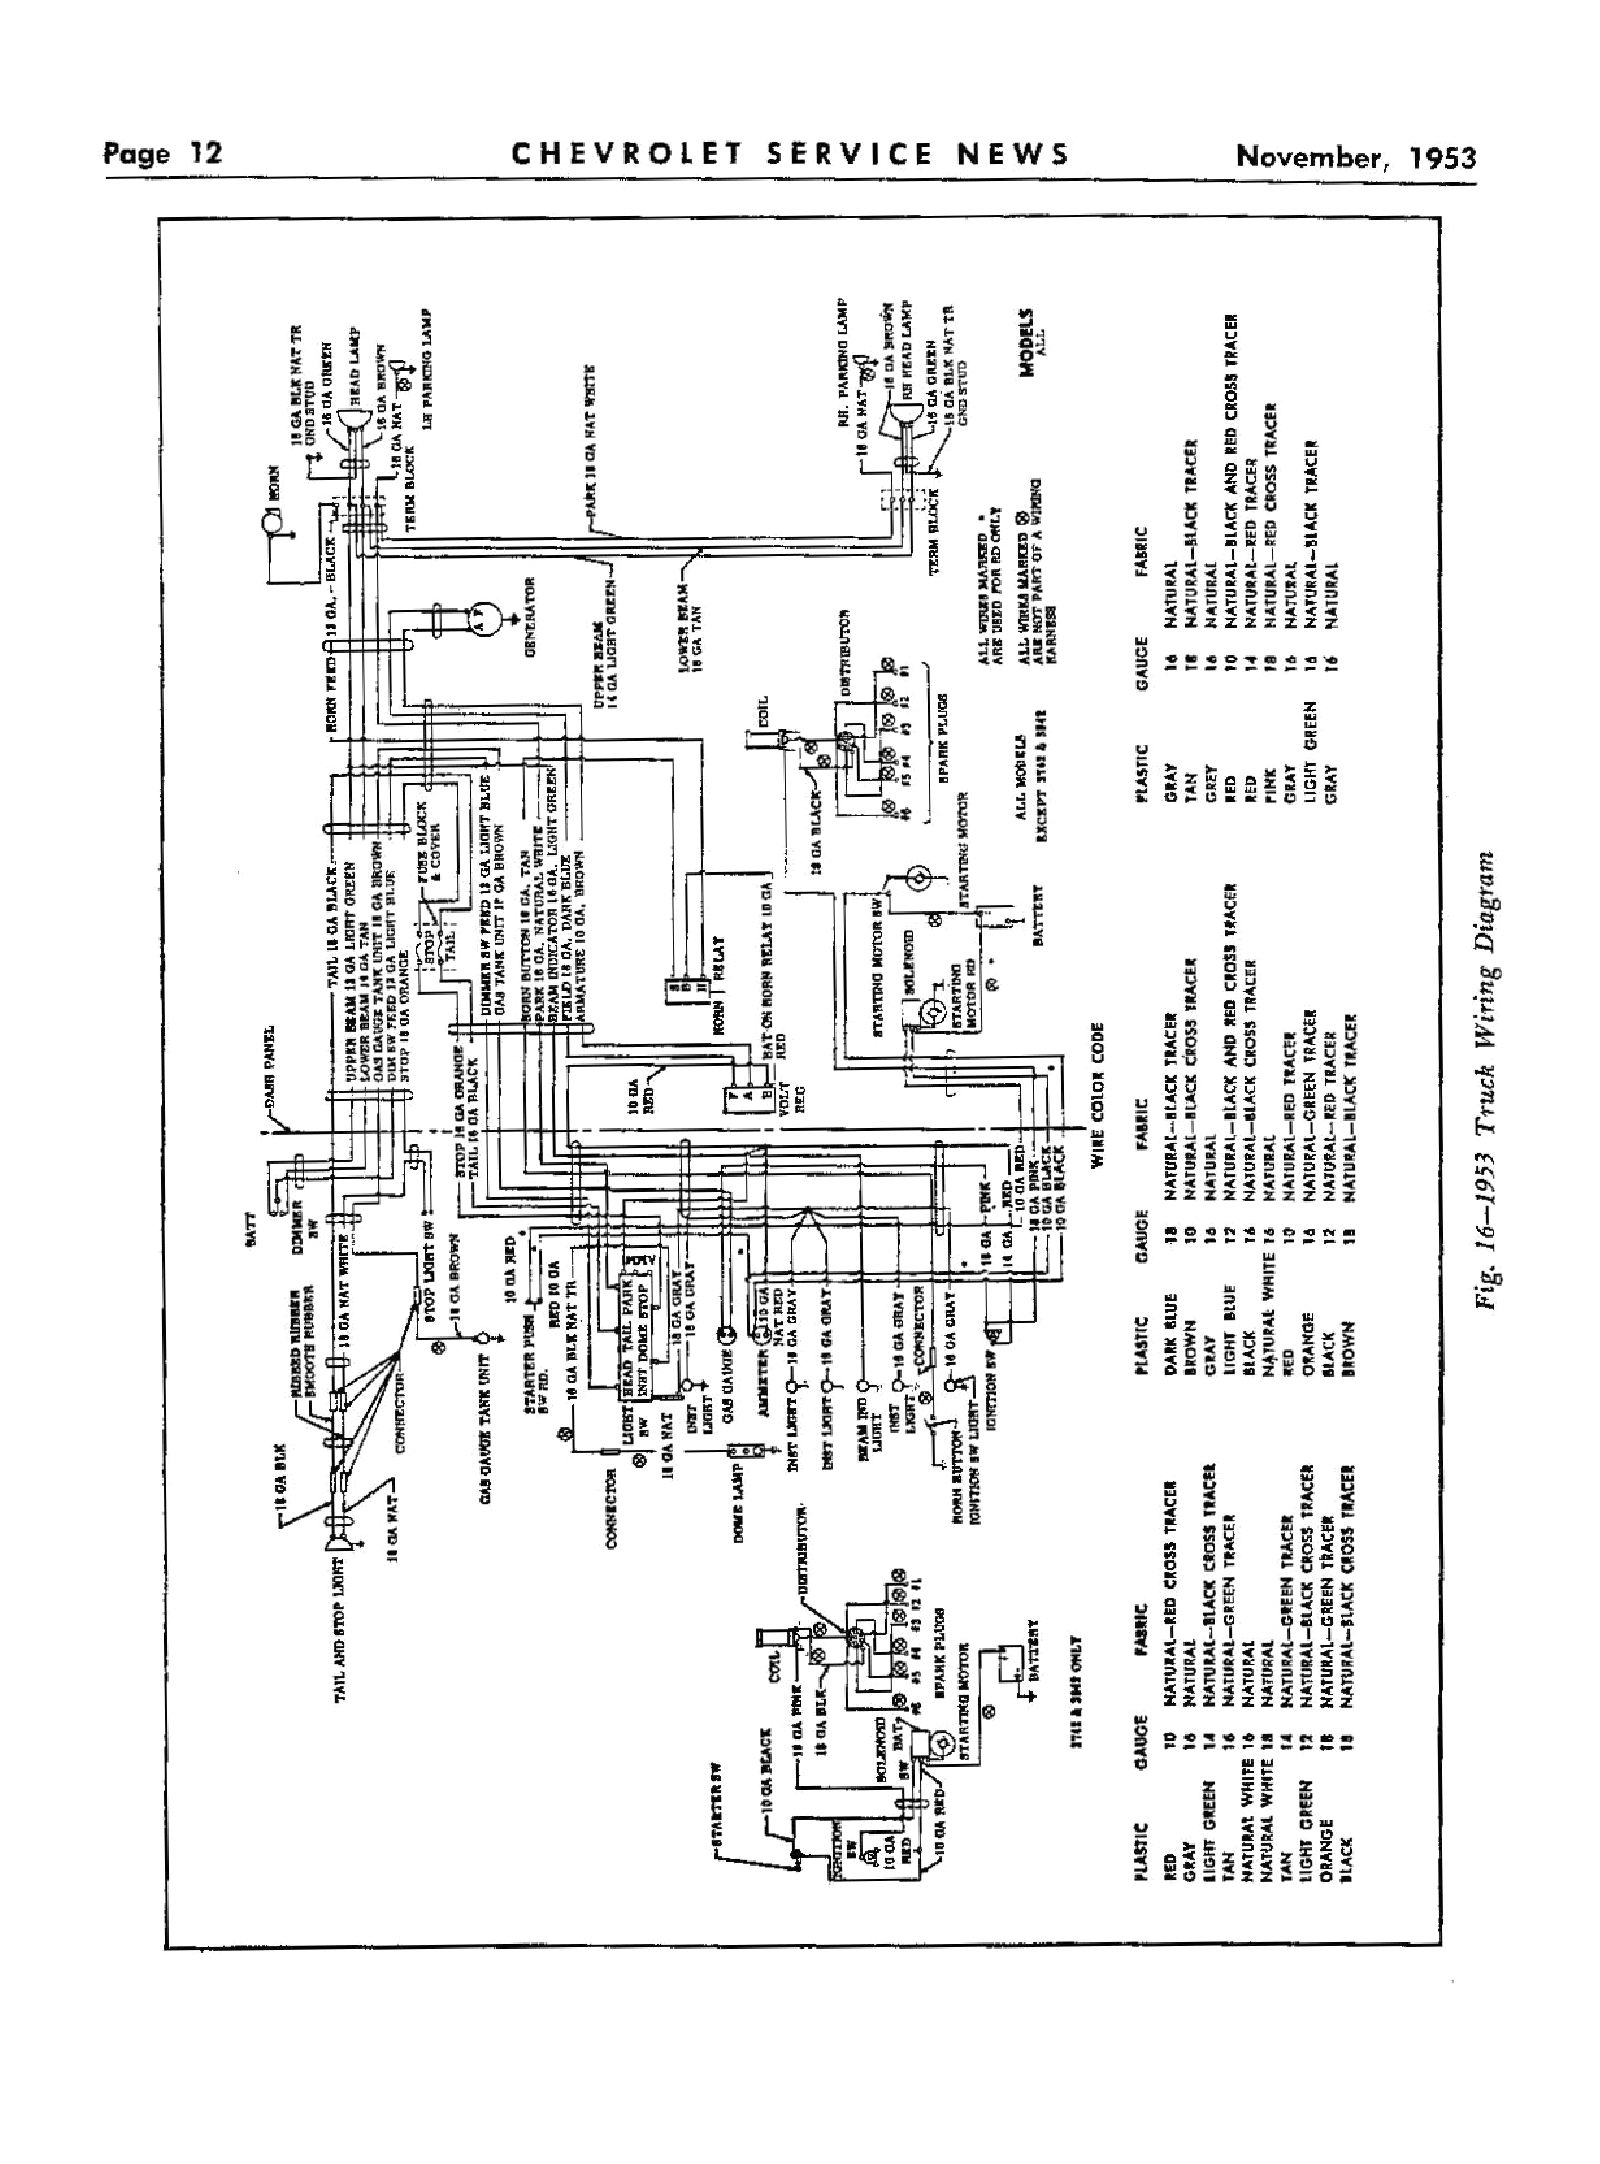 1953 Ford Mainline Wiring Diagram Good 1st Suzuki Turn Signal Todays Rh 15 12 7 1813weddingbarn Com Flathead